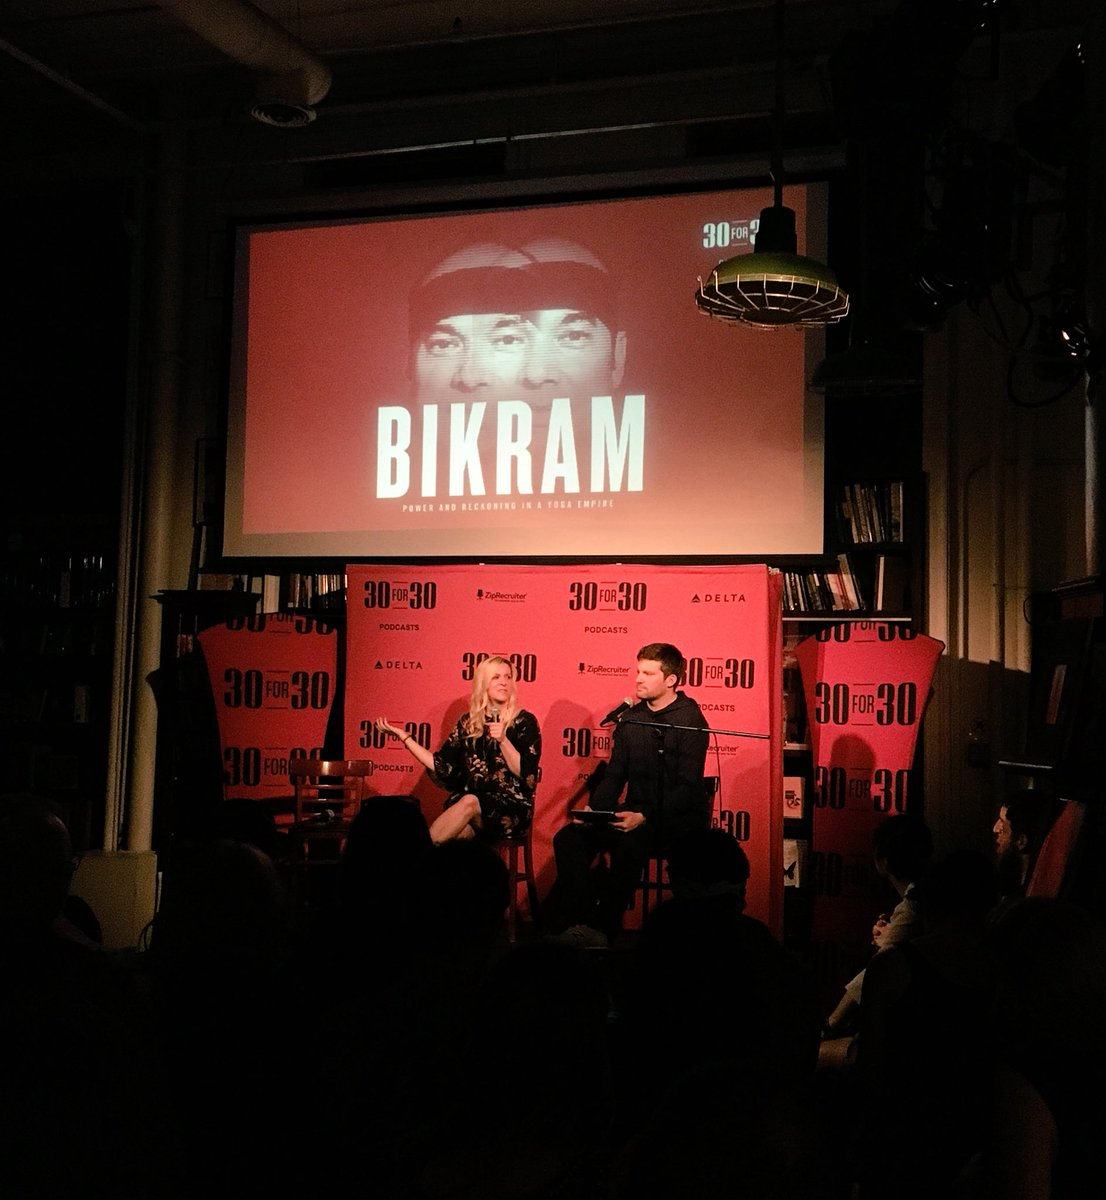 .@30for30 in the house for the launch of their season three miniseries on #Bikram